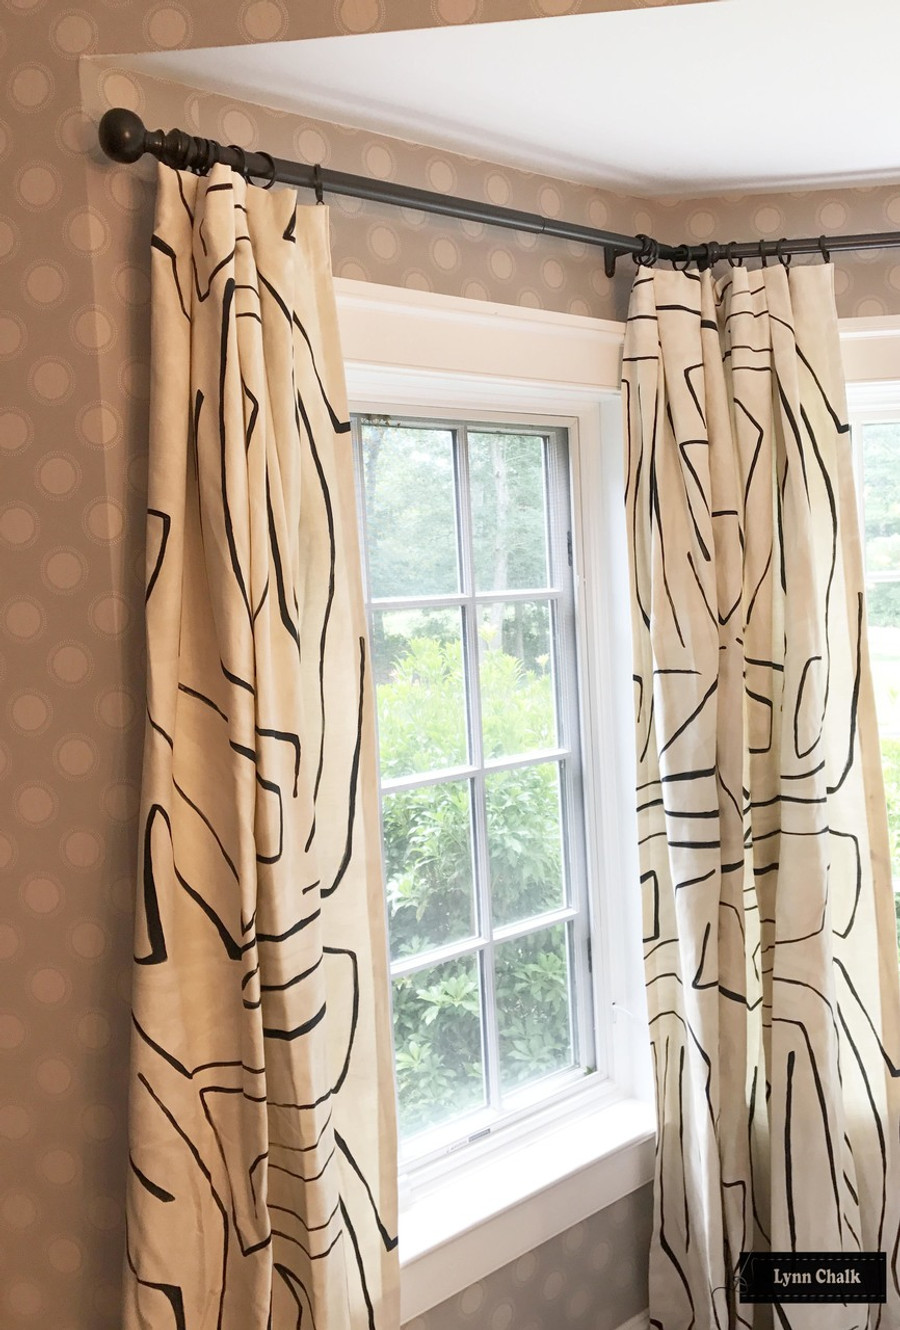 Kelly Wearstler for Lee Jofa Graffito Drapes (shown in Linen/Onyx-comes in several colors)